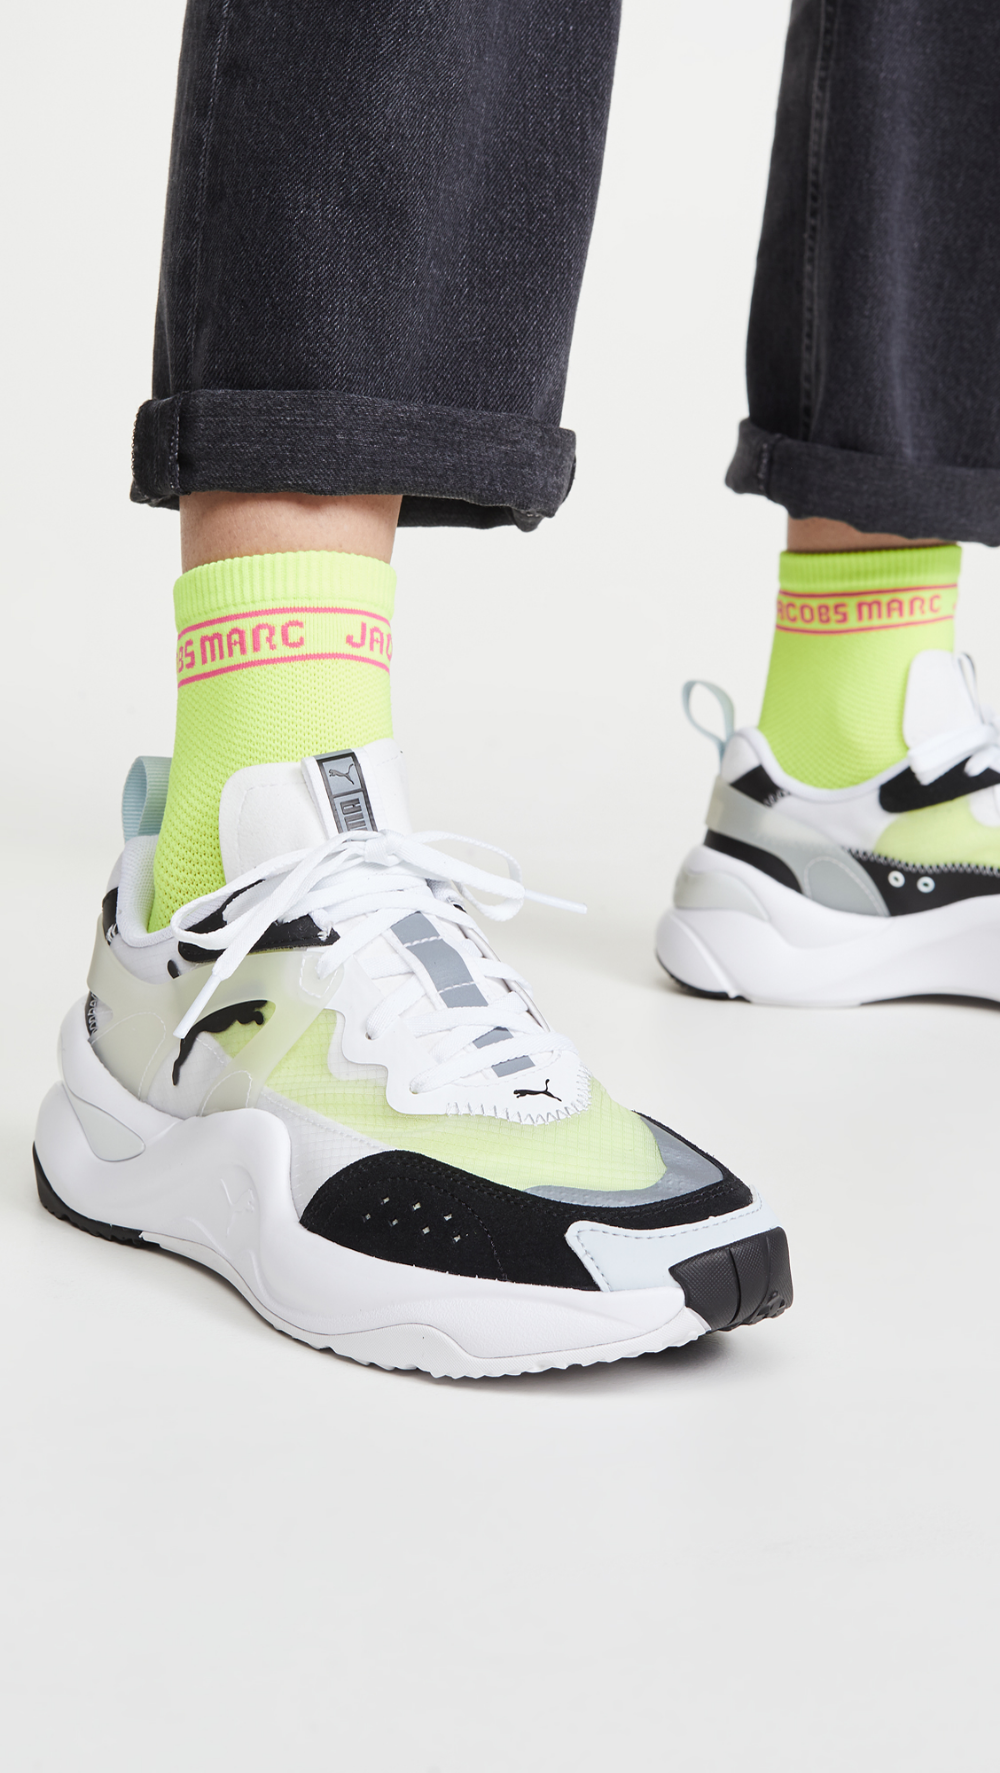 Puma Rise Sneakers Shopbop New To Sale Up To 70 On New Styles To Sale Sneakers Sneakers Nike Puma Sneakers